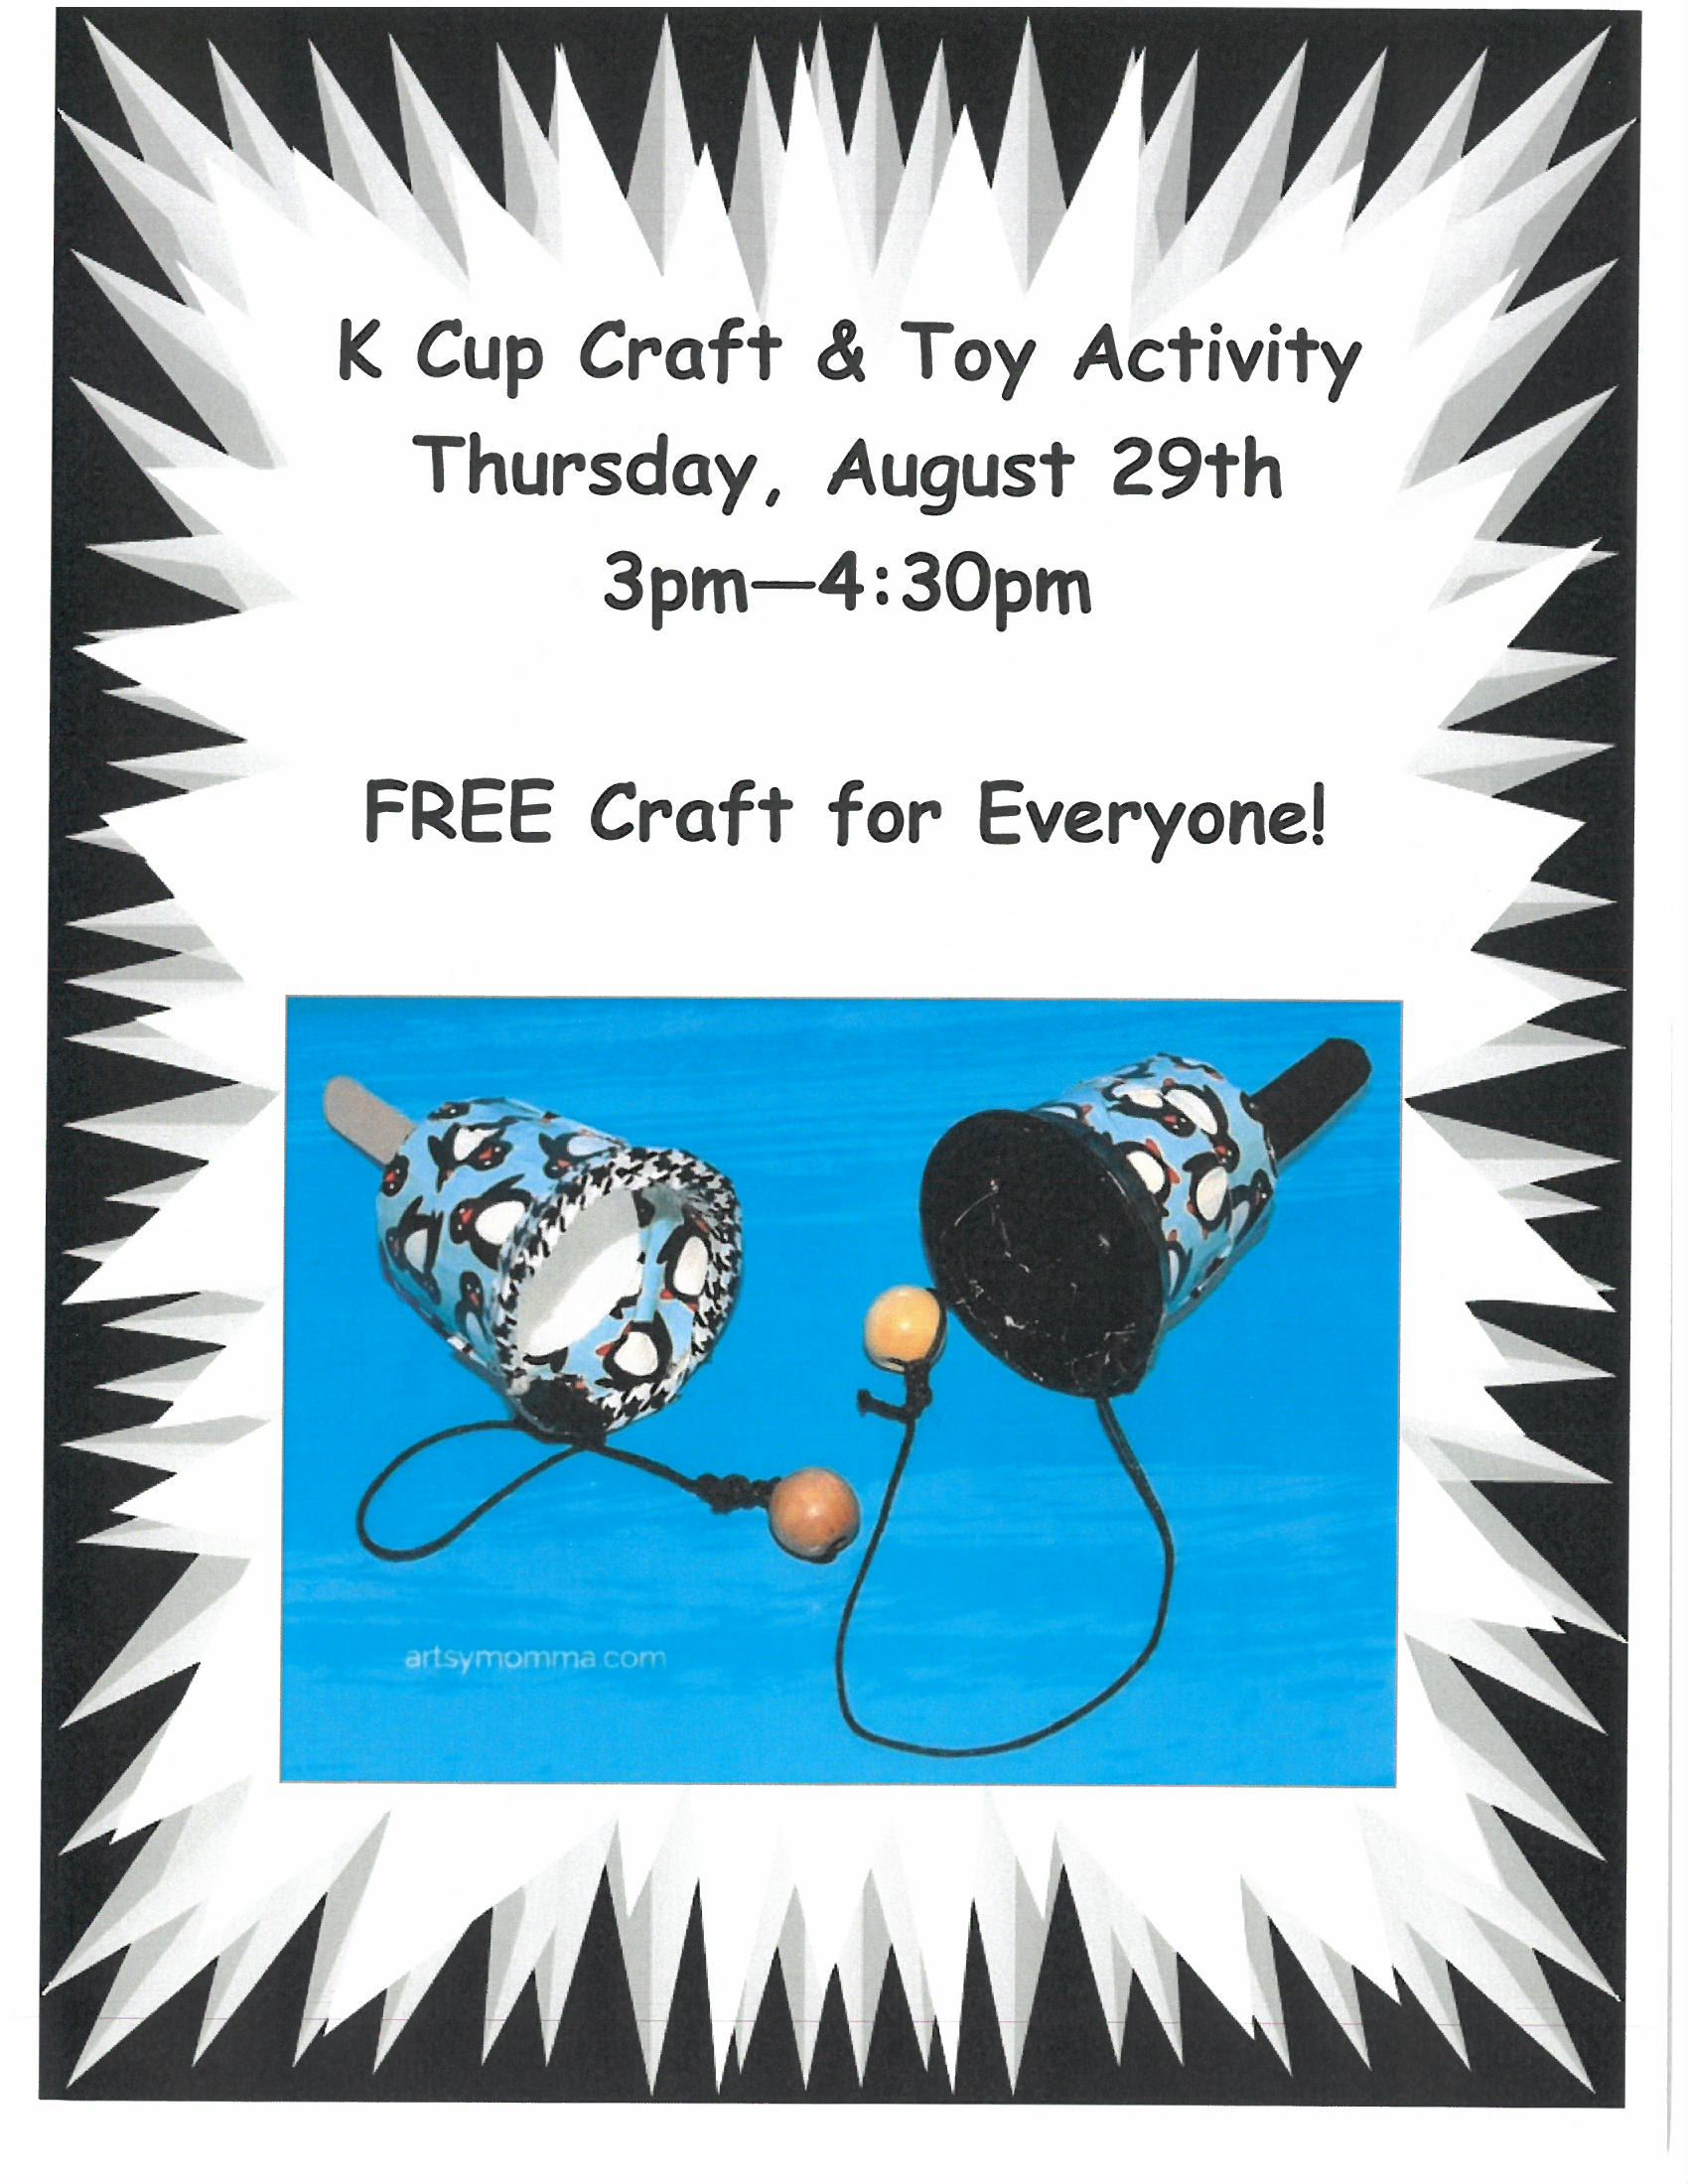 K Cup Craft and Toy